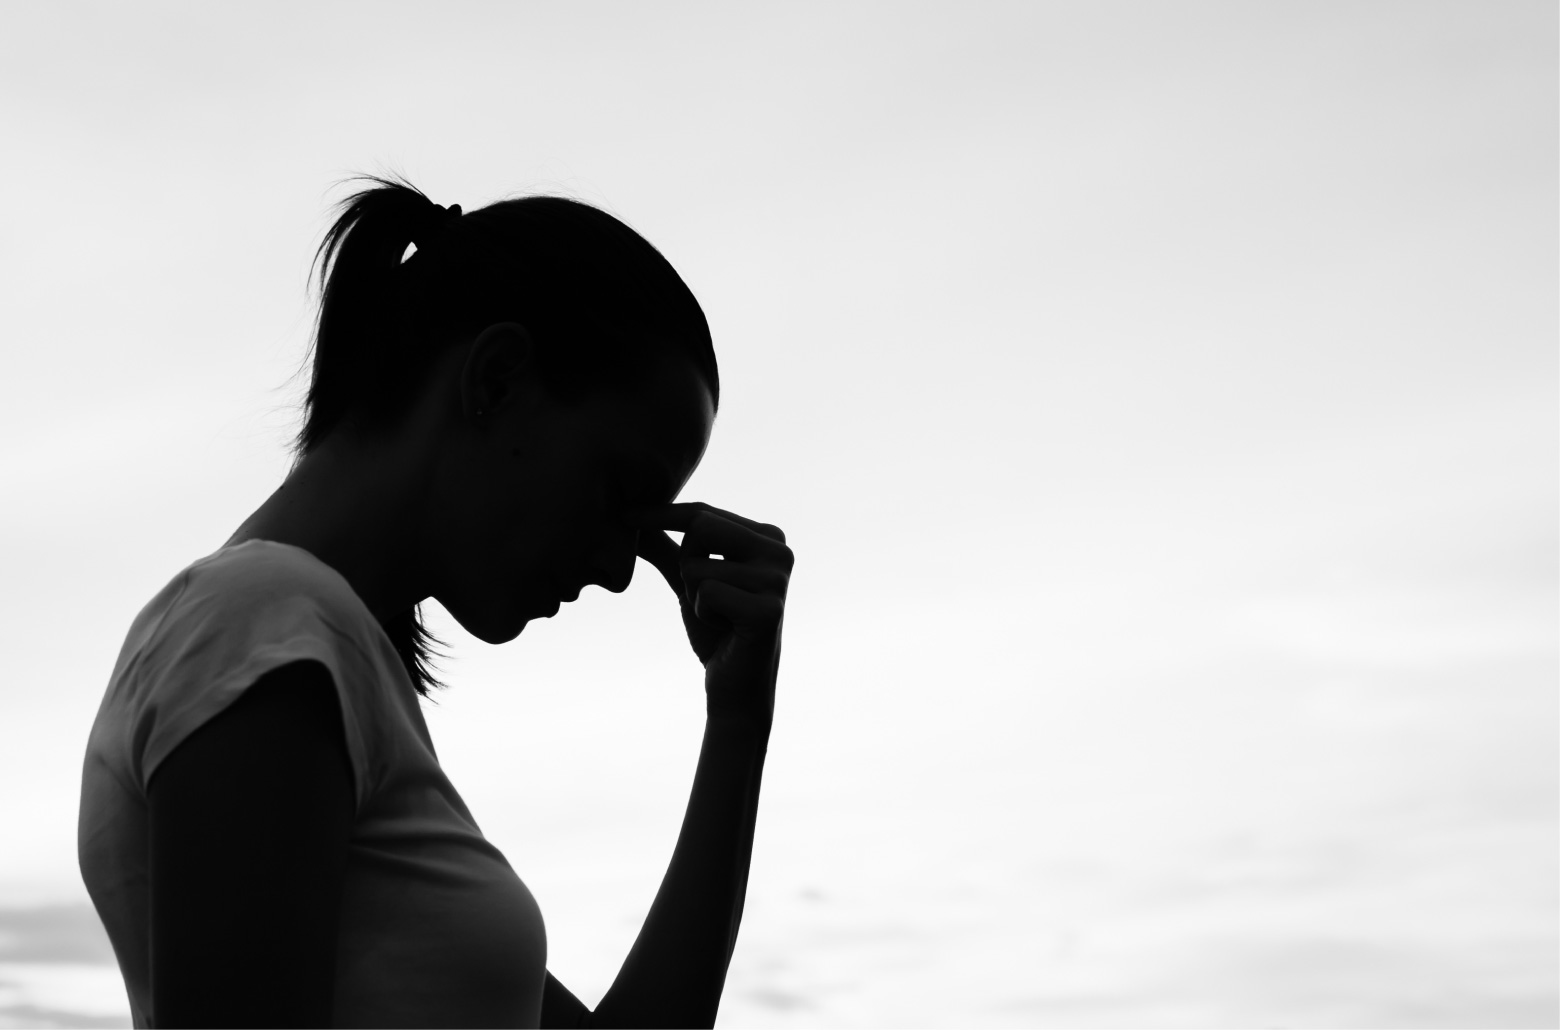 black and white profile of woman holding bridge of nose in pain